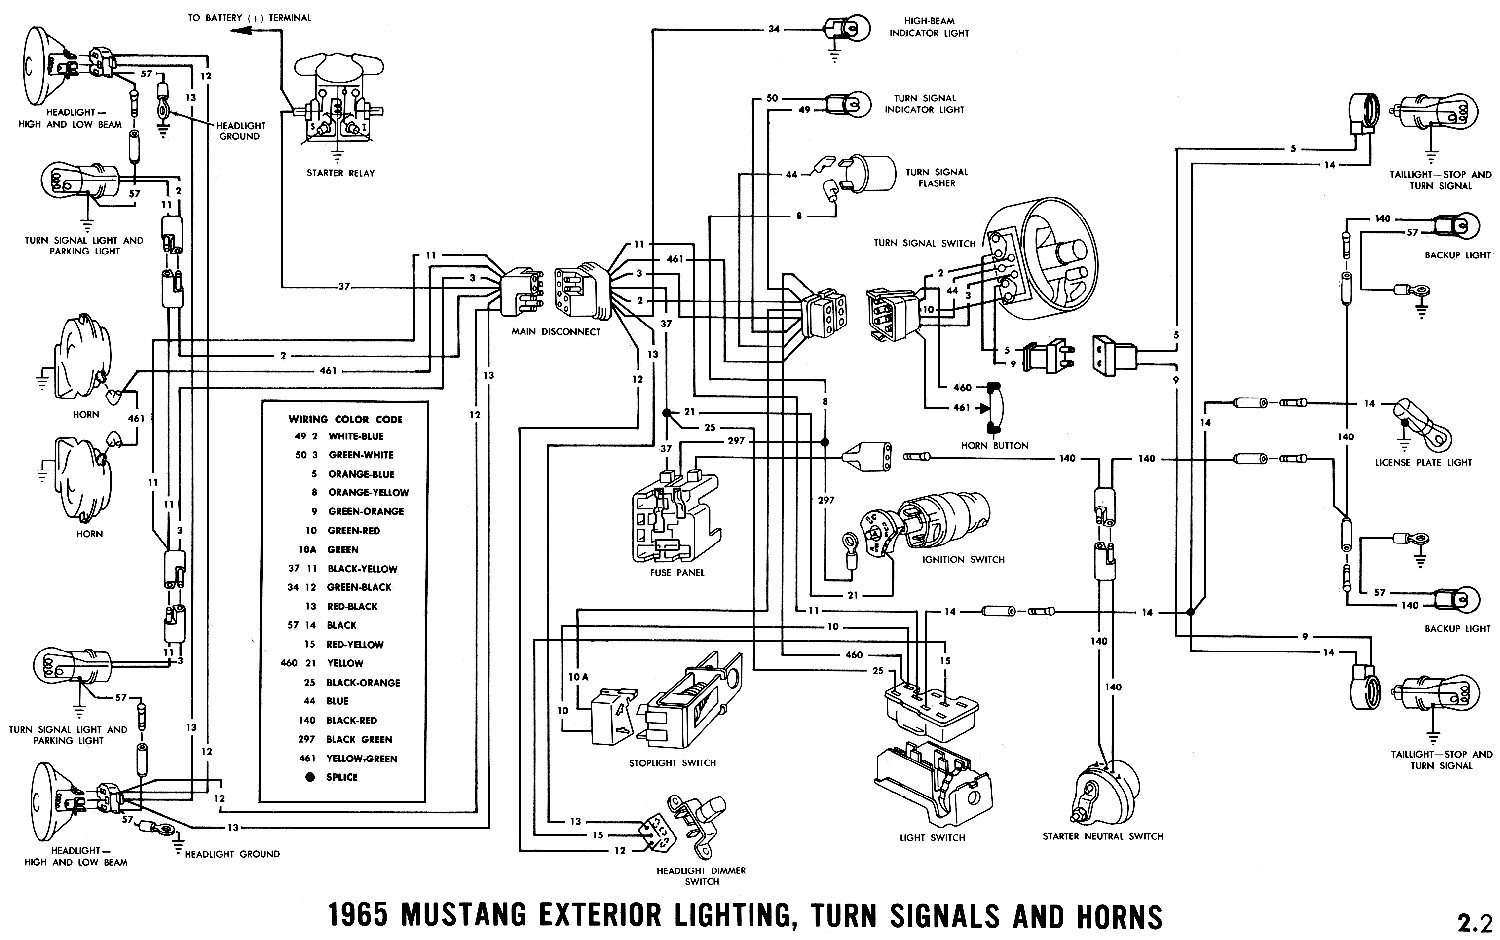 1989 Mustang Wiring Harness Schematic Guide And Troubleshooting Of Engine Diagram 1993 Pdf Todays Rh 1 5 9 1813weddingbarn Com Body